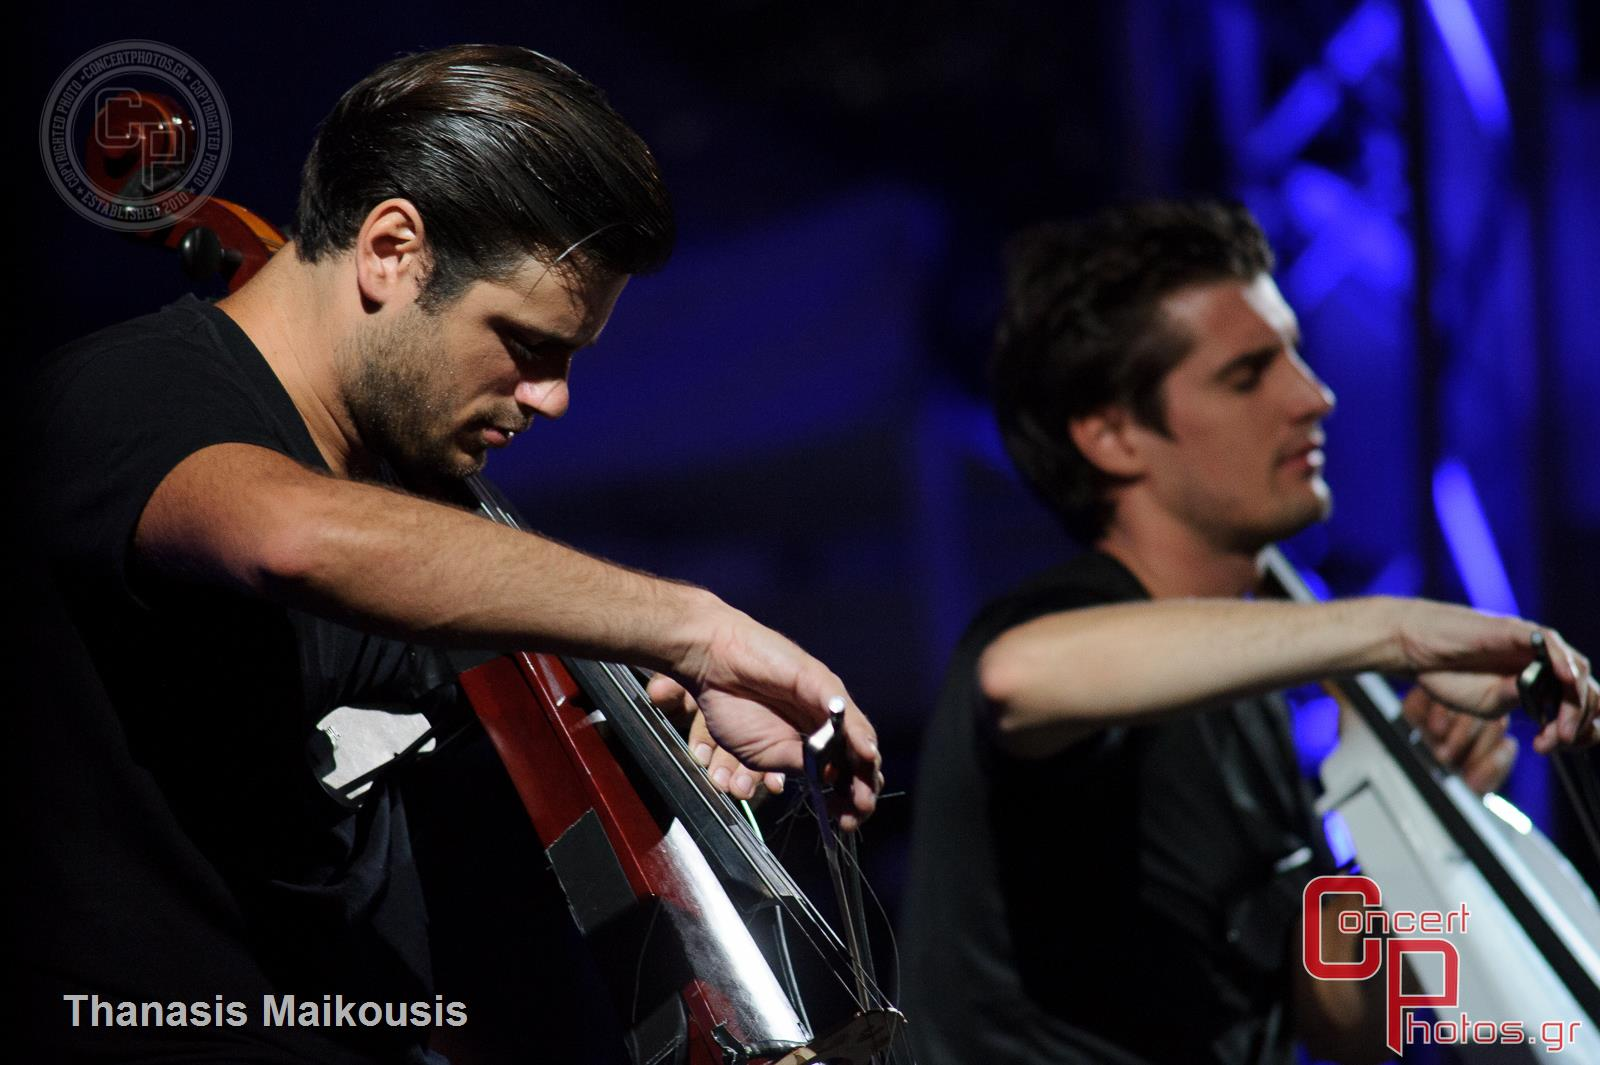 2Cellos-2Cellos Technopolis photographer: Thanasis Maikousis - untitled shoot-6060